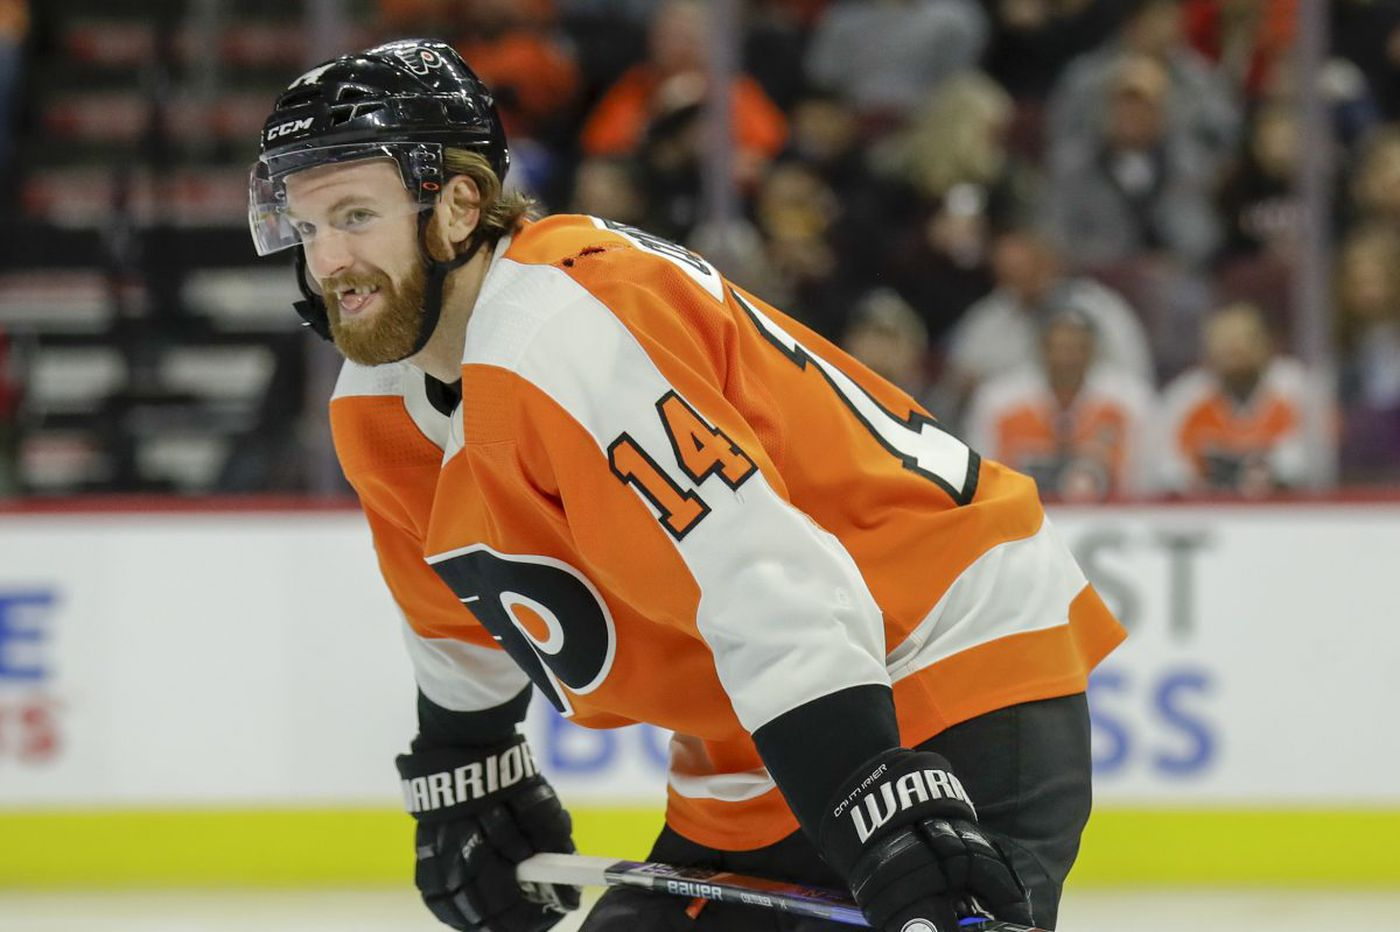 Flyers-Bruins preview: Can the Flyers end their nine-game losing streak?